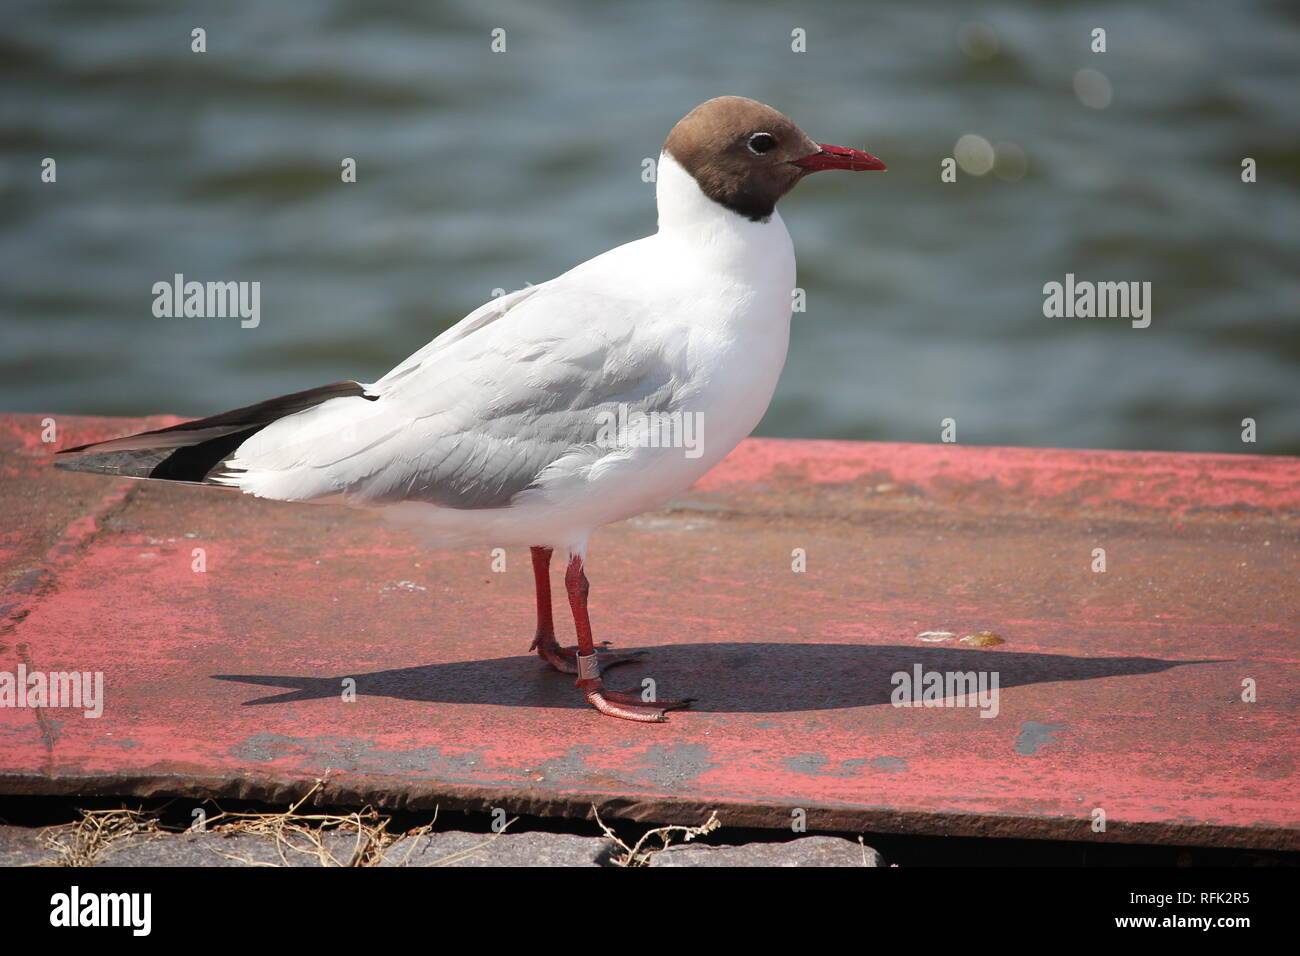 Adult Black-headed-Gull (Larus ridibundus) in the harbour area of Ribnitz-Damgarten at the Baltic Sea coast of Germany. - Stock Image